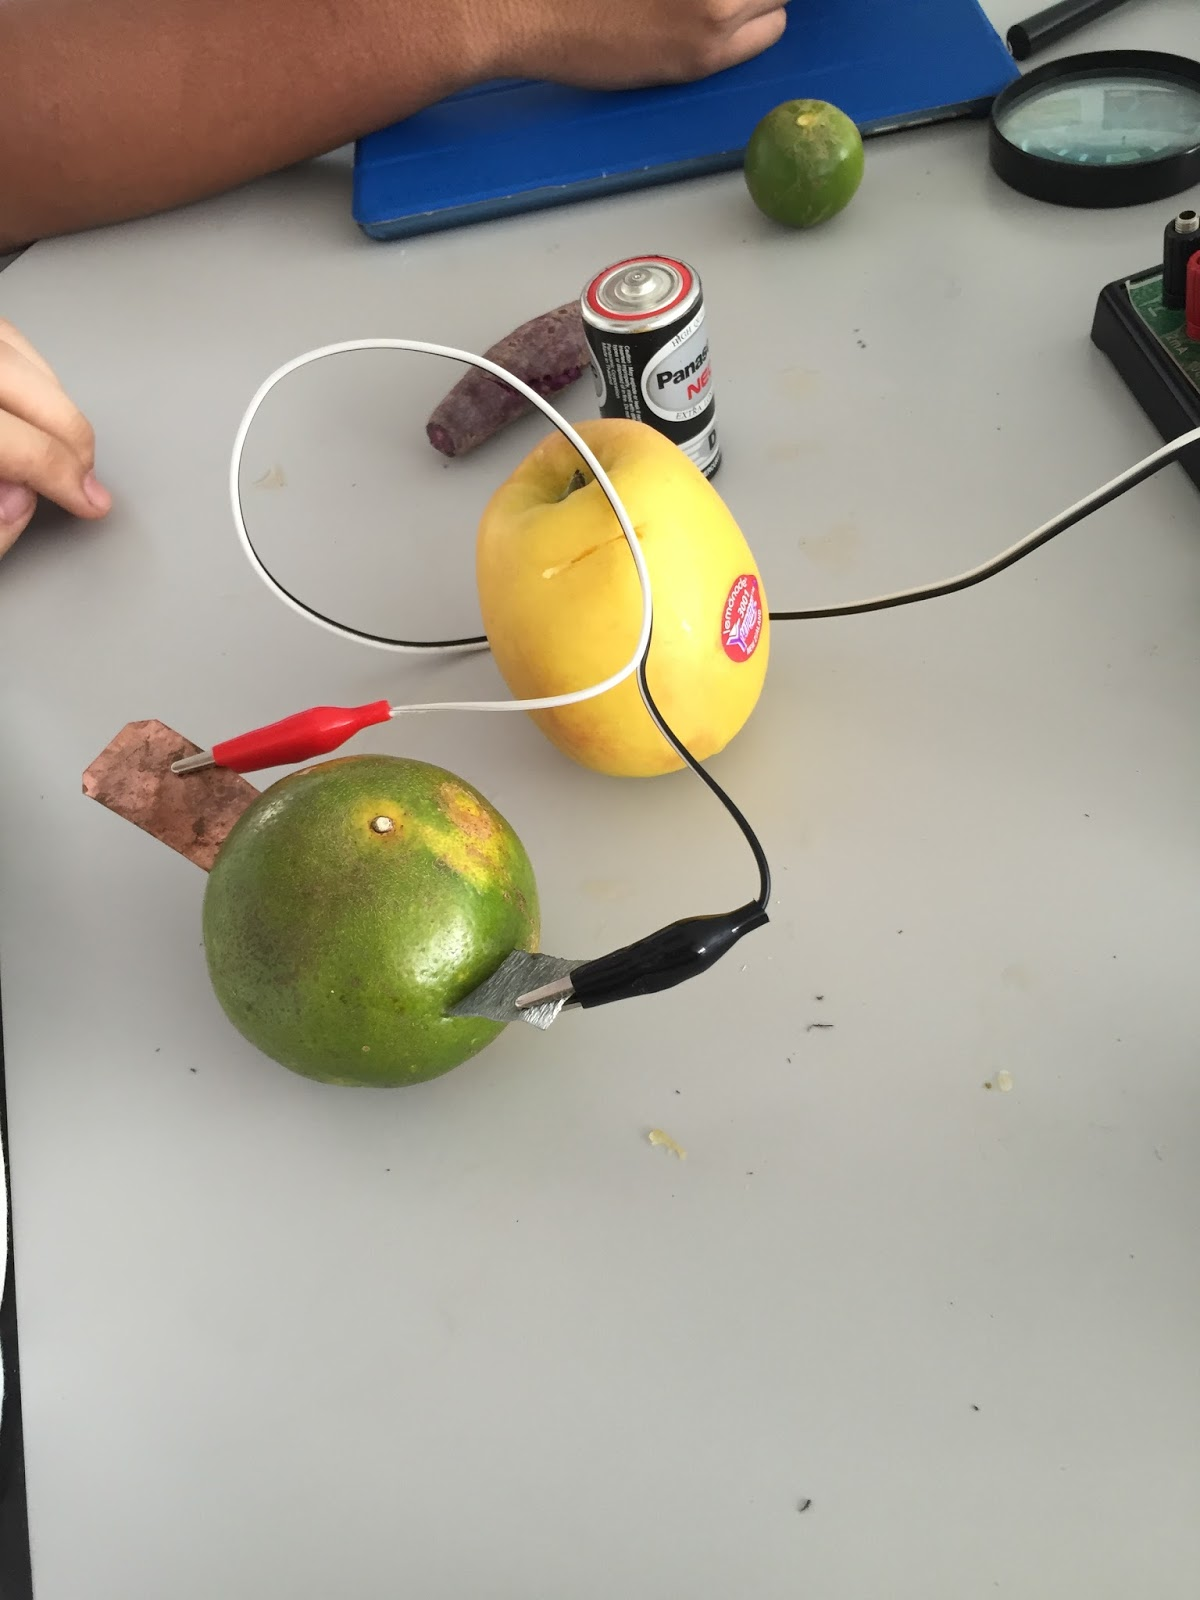 fruit battery conclusion The more you squeezed the fruit, the more electricity the fruit would produce if you put the pennies and the nail to the wrong color alligator clip it would create negative energy if a larger fruit is used to make a fruit battery, then it will generate more energy.